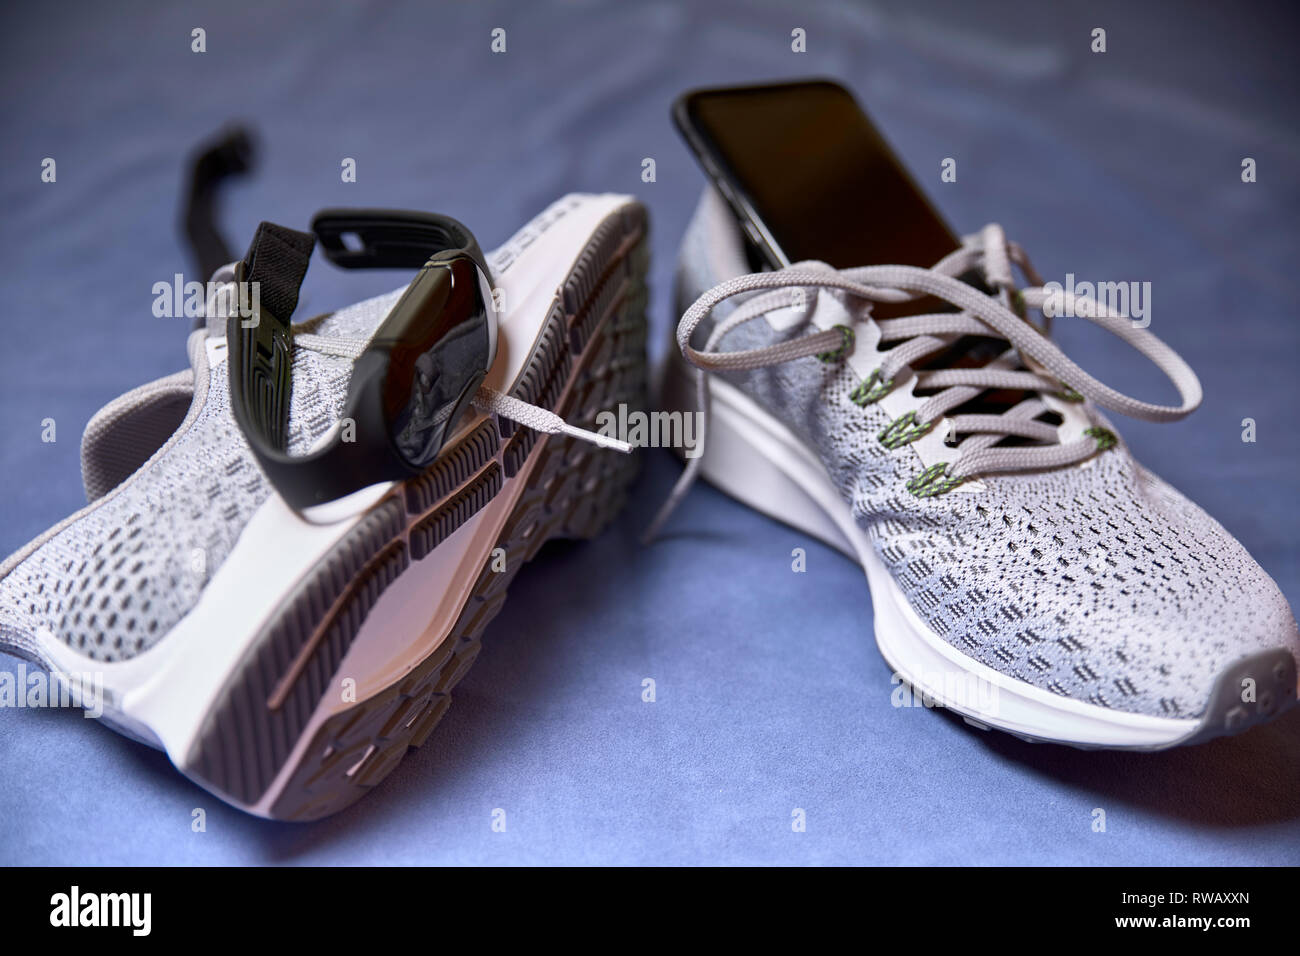 running shoes with technological accessories and next to a pot of water on a blue towel - Stock Image